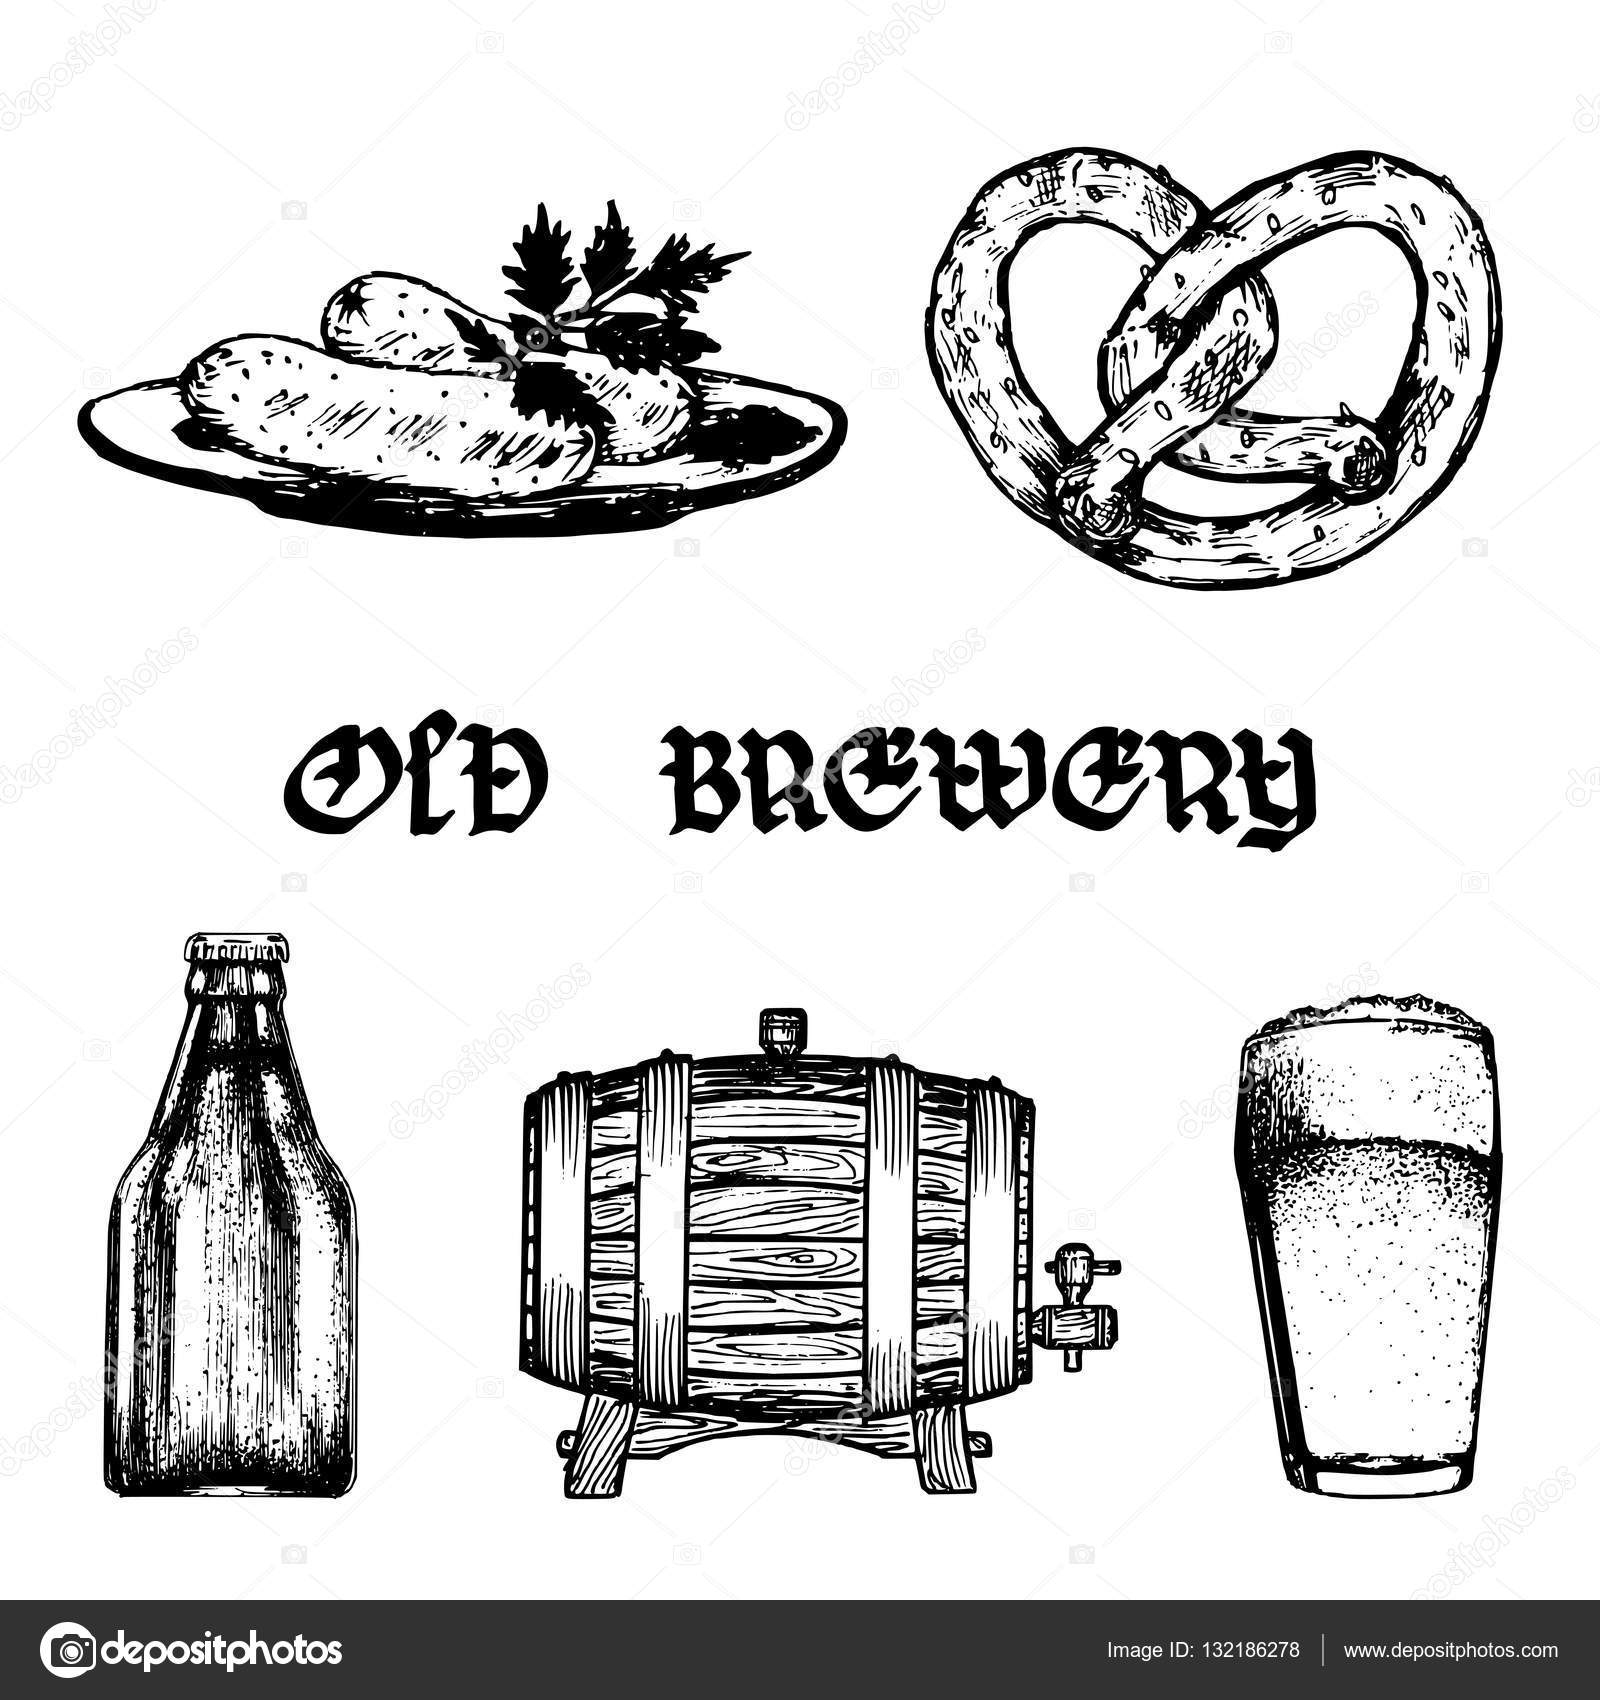 Old brewery banner — Stock Vector © vladayoung #132186278.